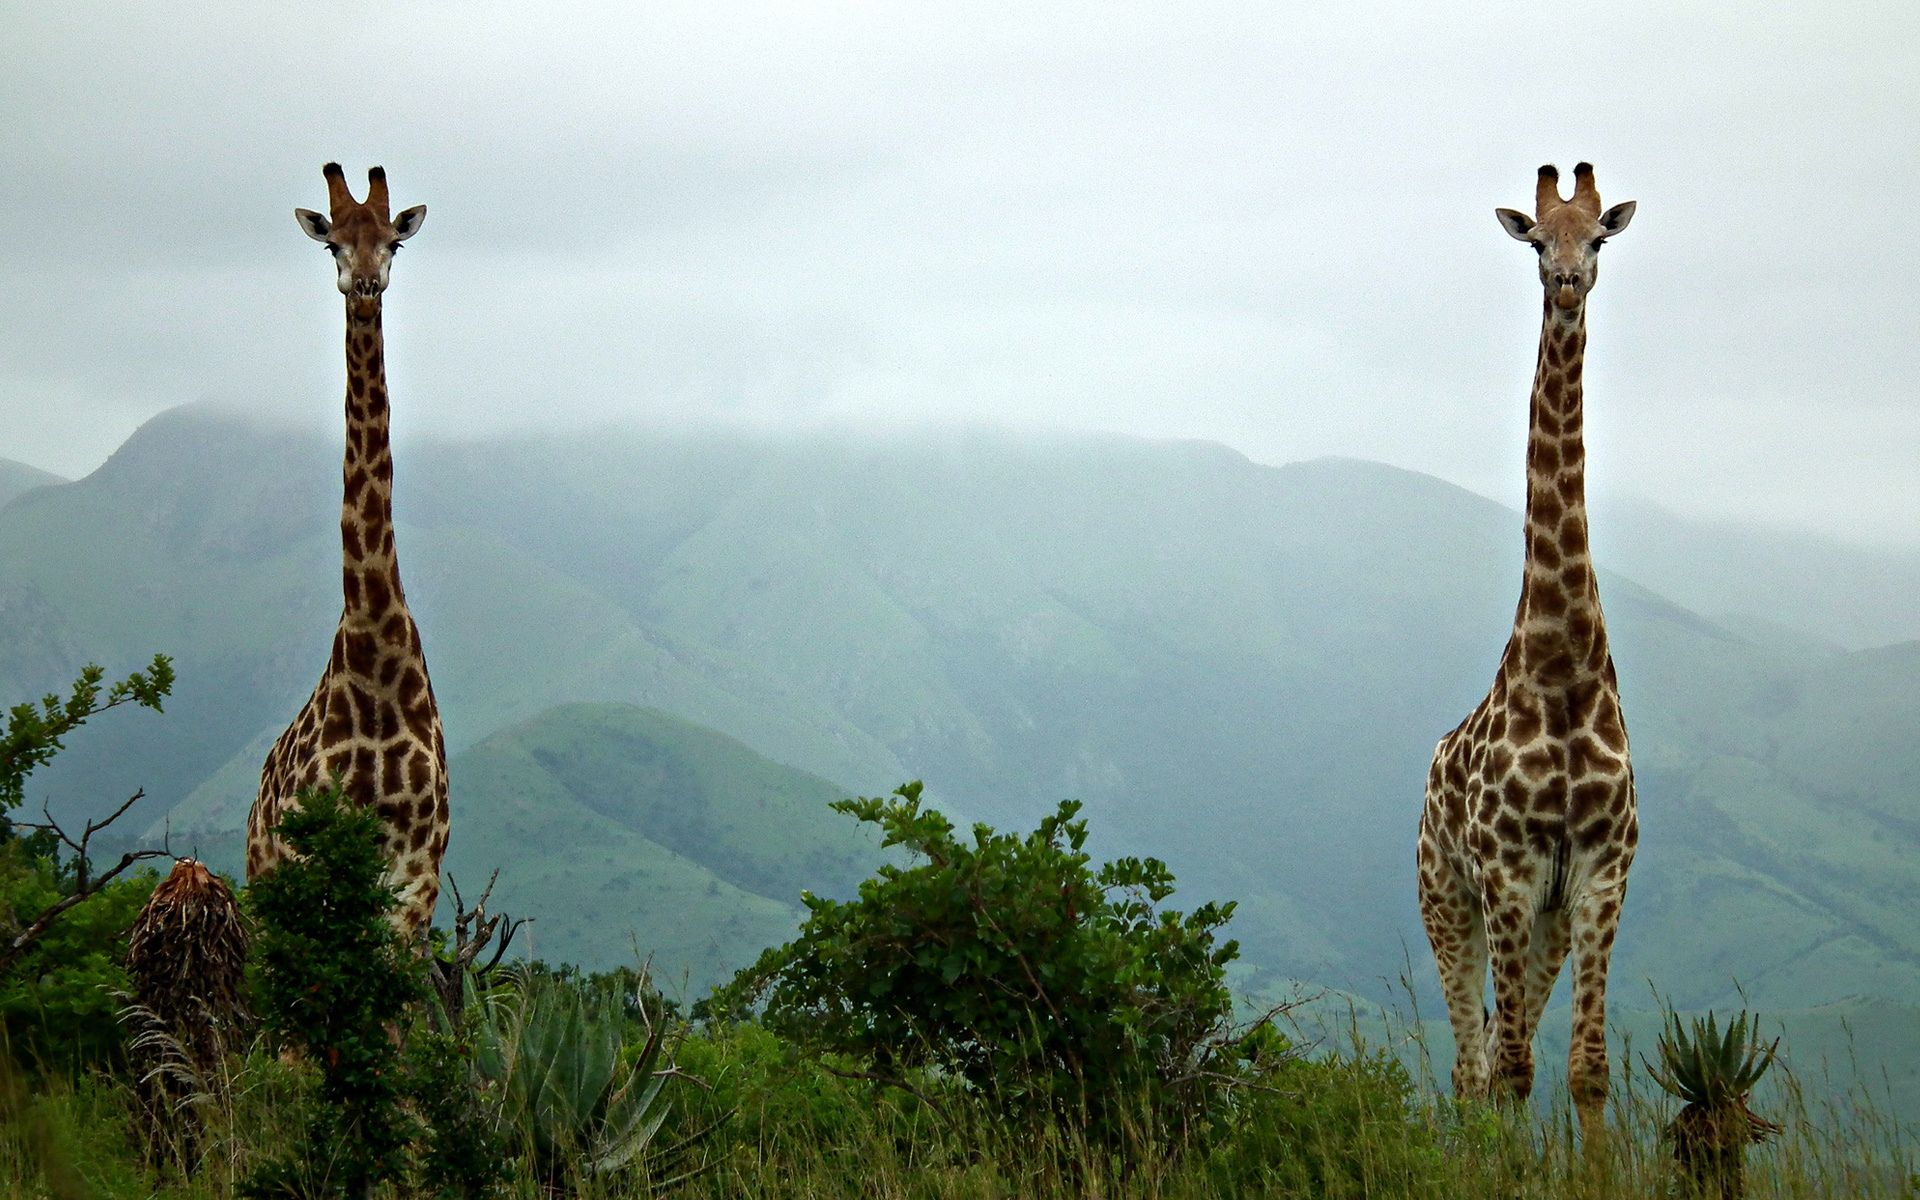 Giraffe HD Wallpapers Backgrounds Wallpaper 1920x1200 44